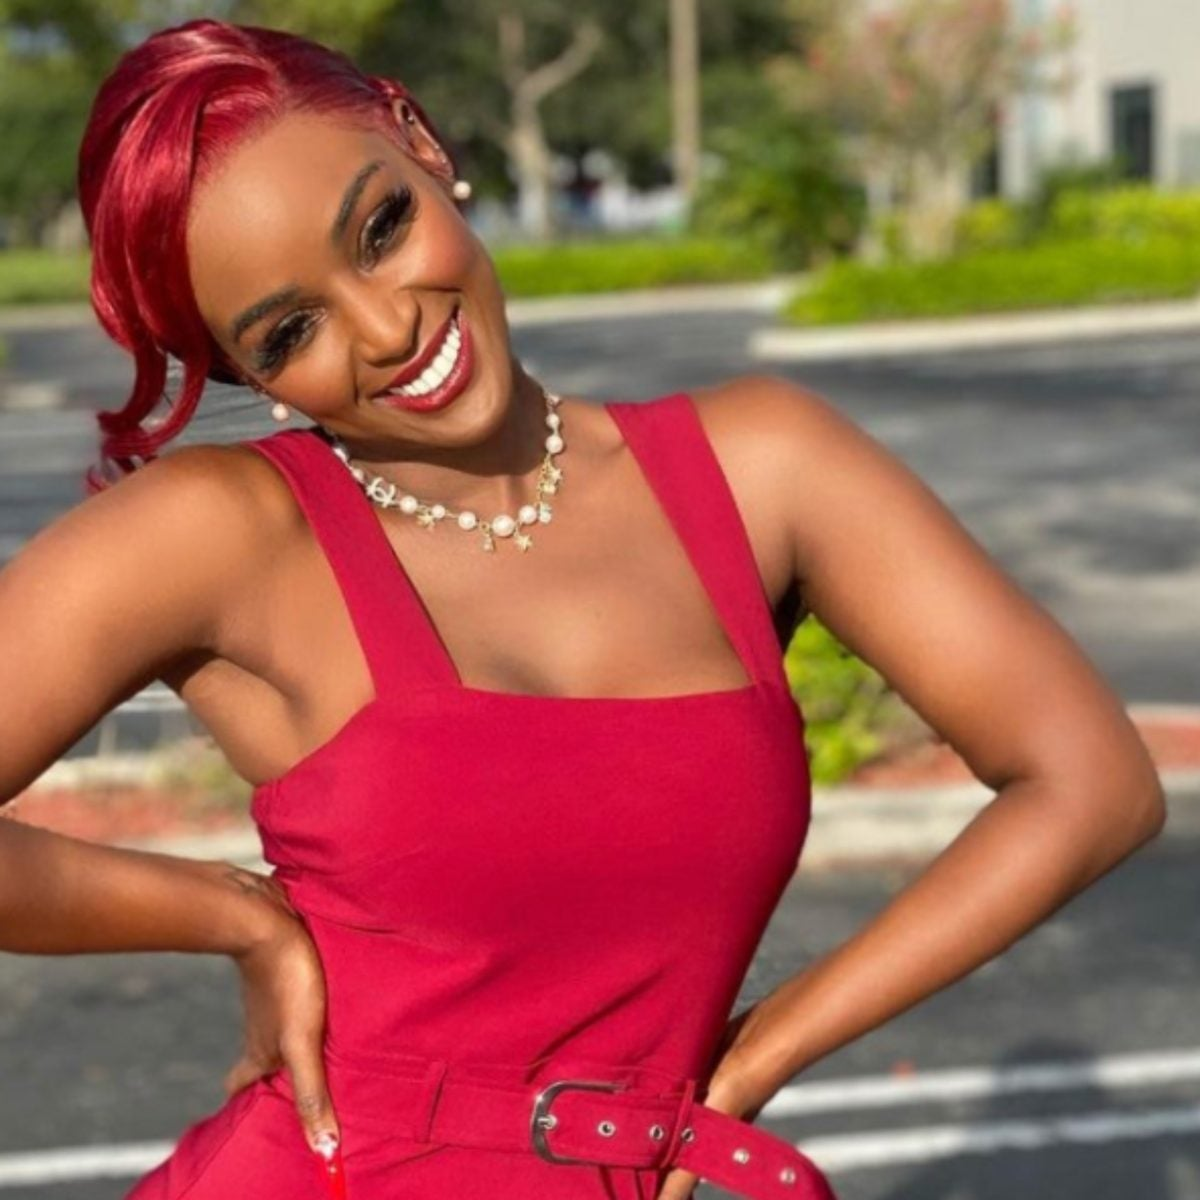 Amara La Negra Has Lost 35 Pounds But Her Confidence Hasn't Changed